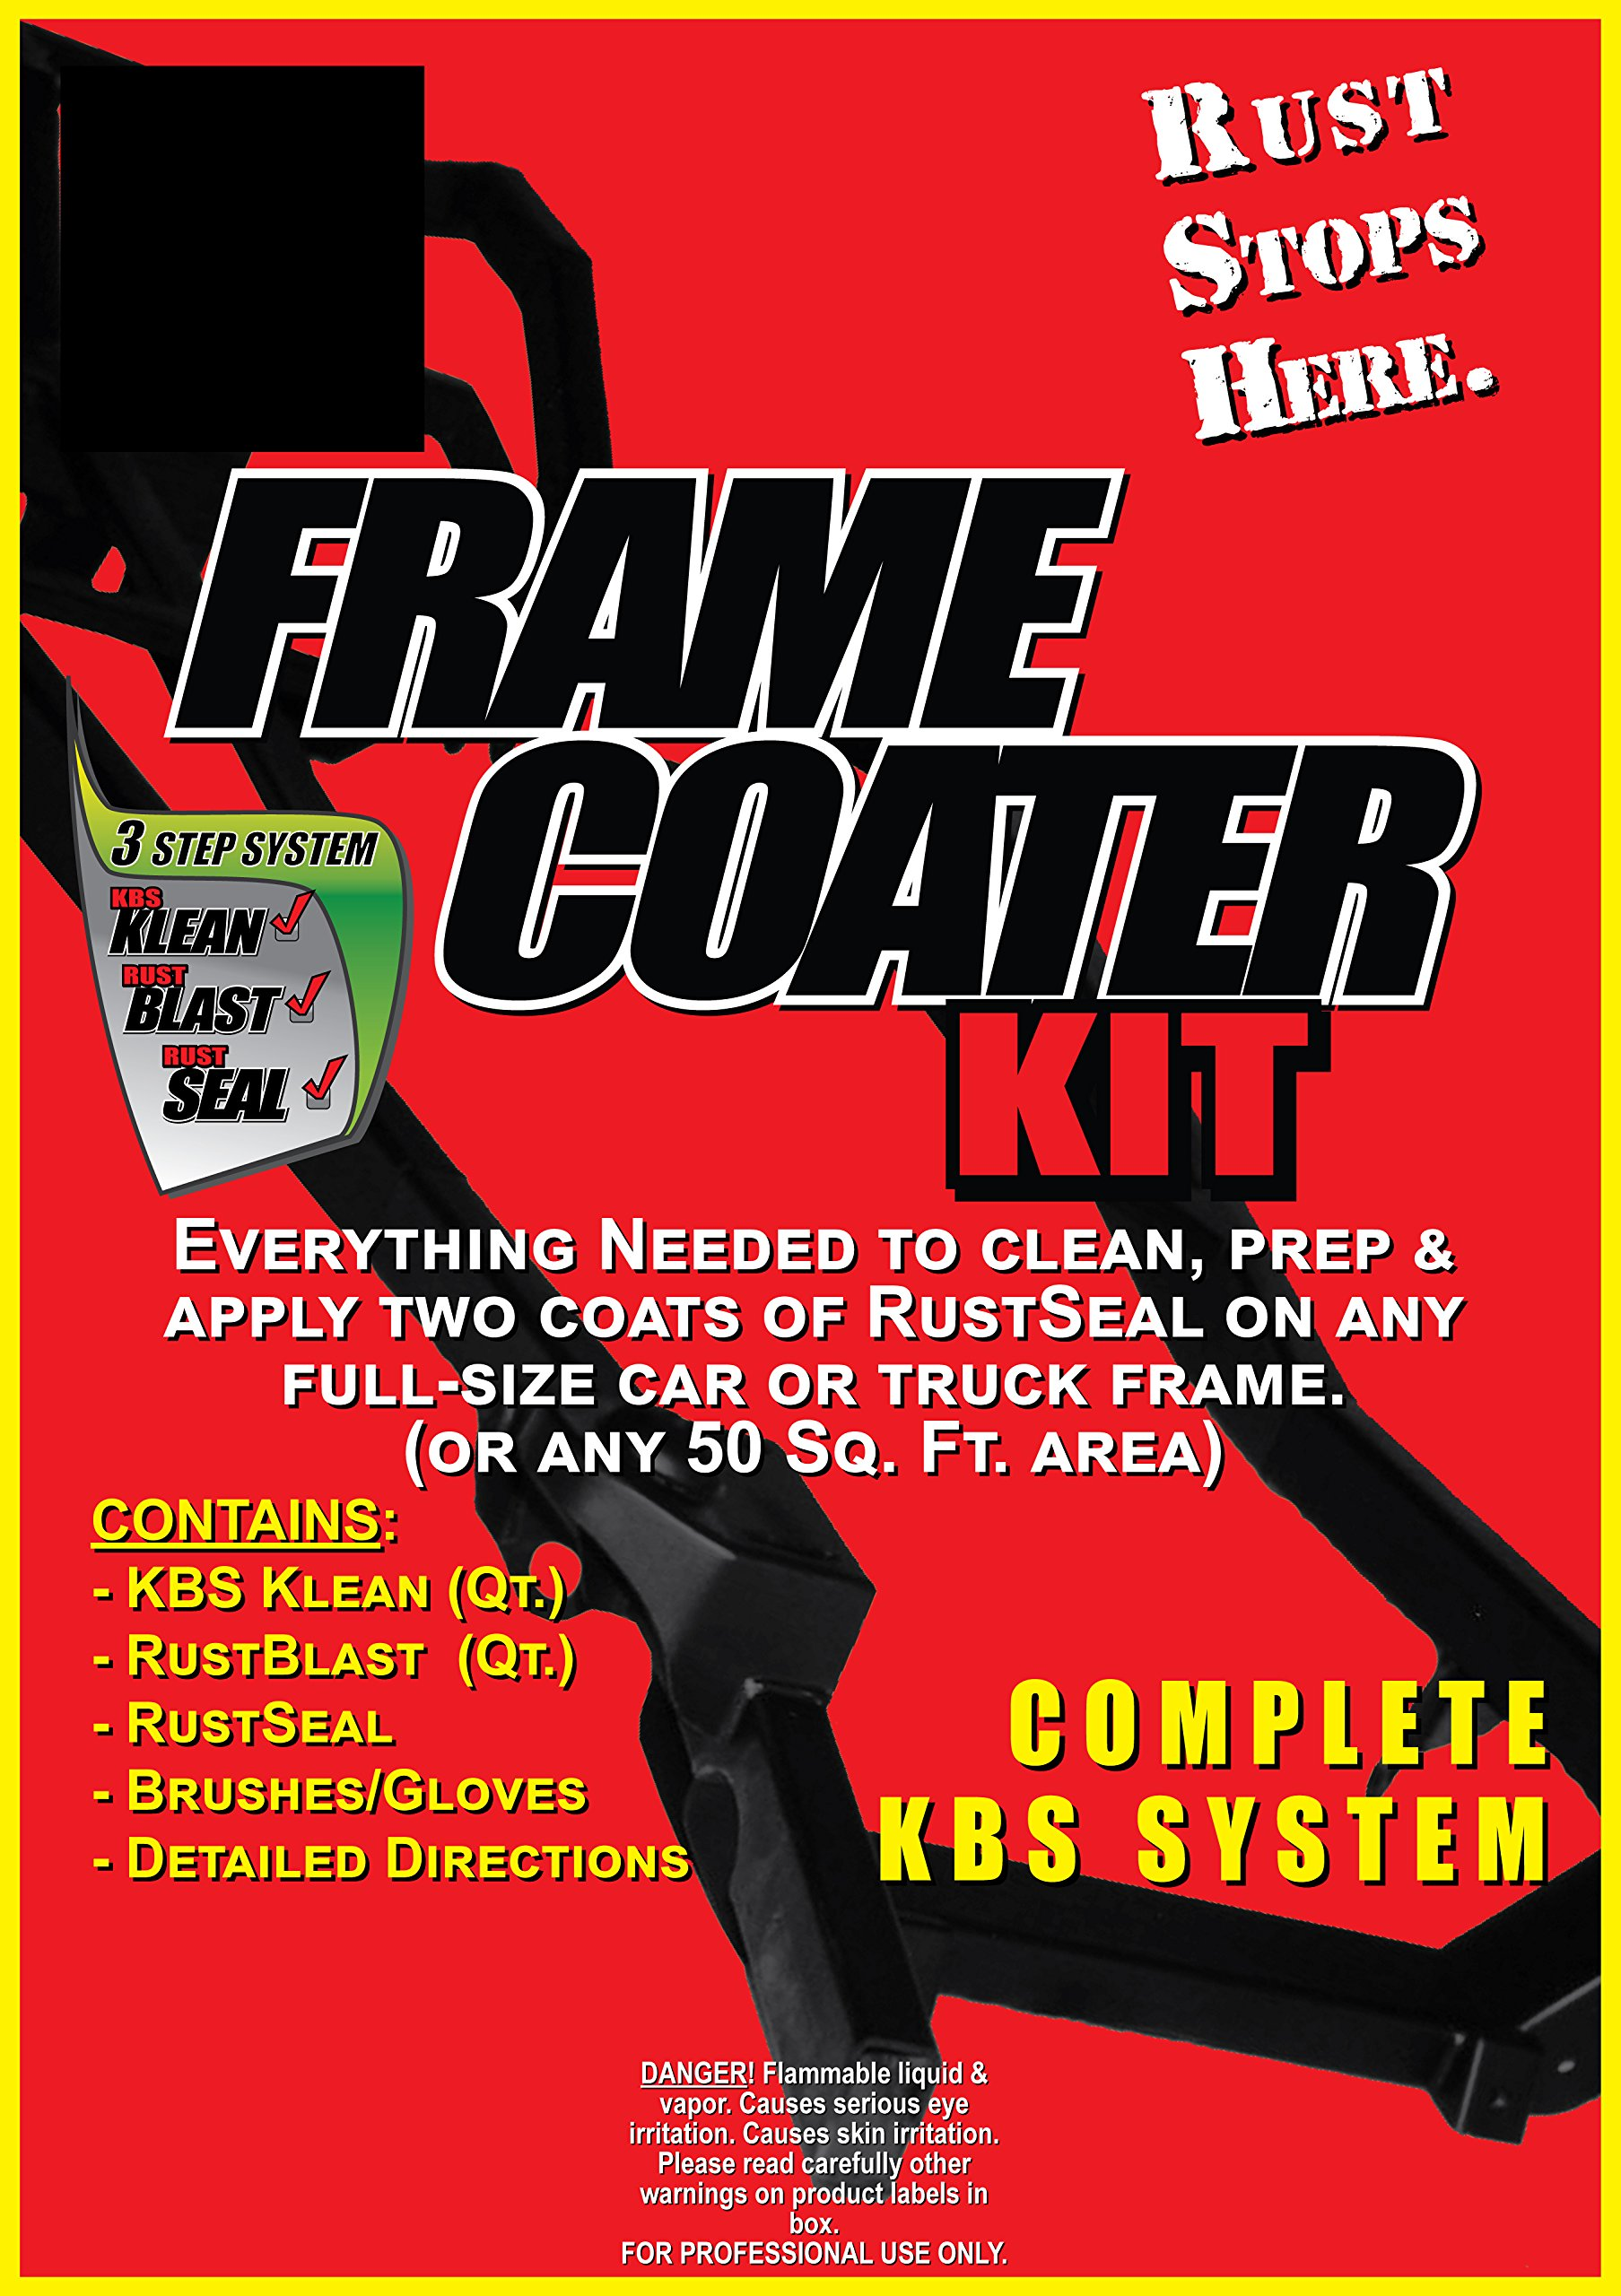 KBS Coatings 57007 Green Frame Coater Kit, Preps and Coats Entire Car or Truck Frame